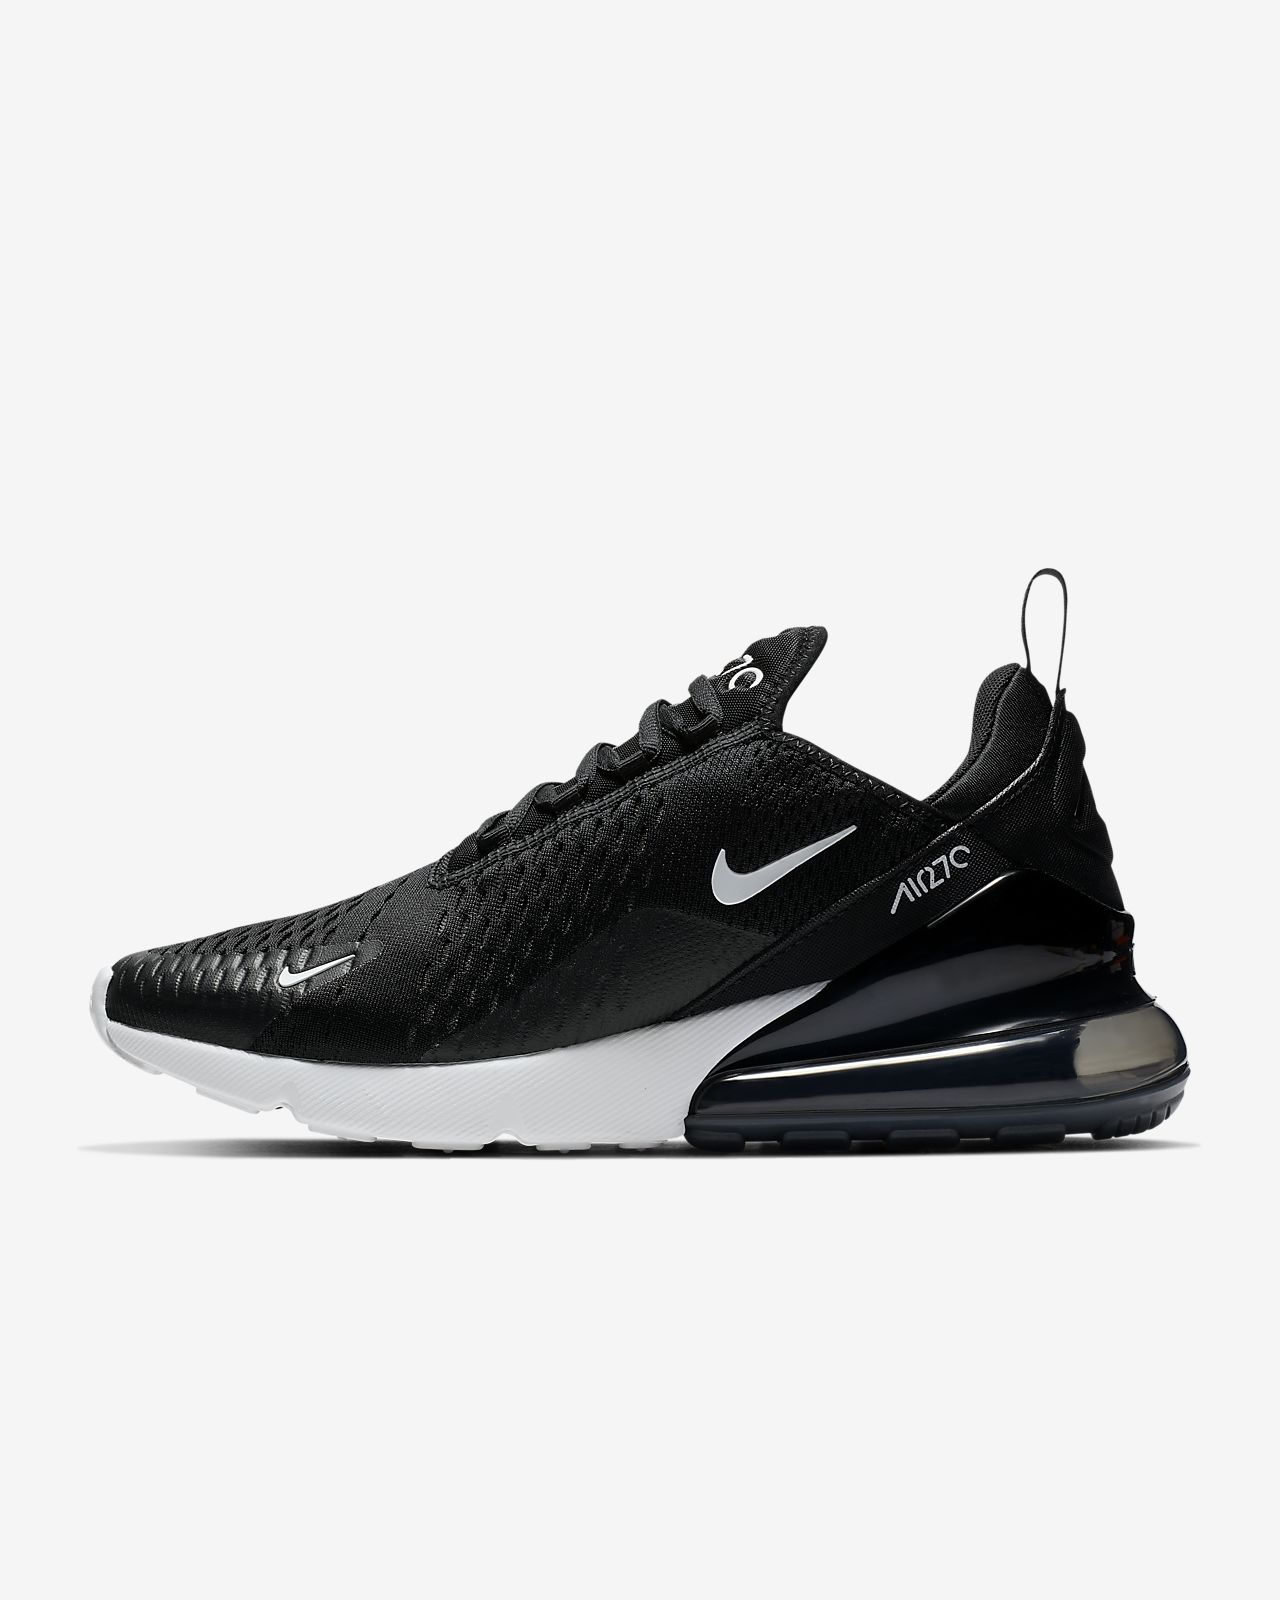 Nike Air Max 270 Women's Shoe